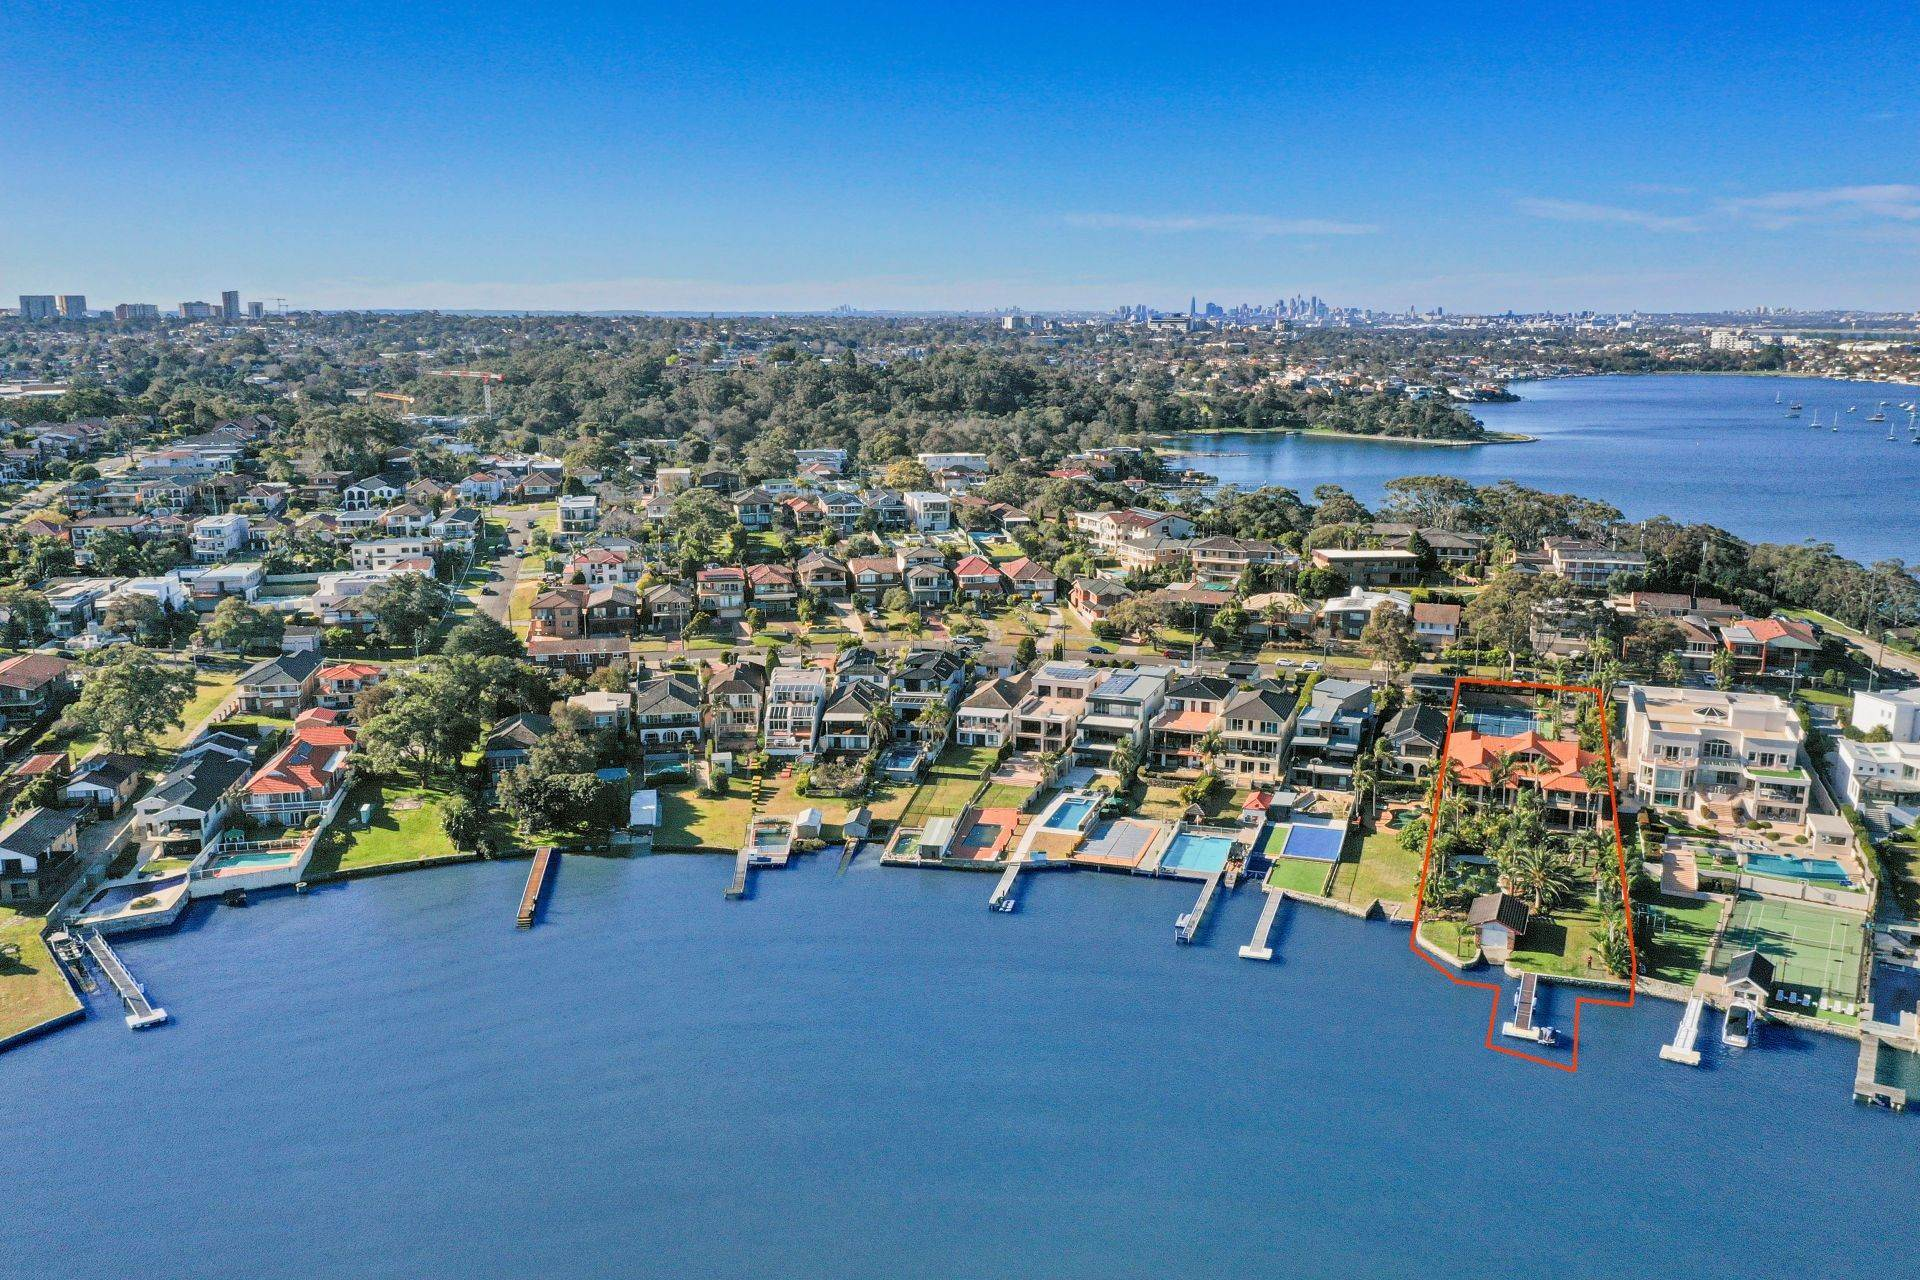 Single Family Home for Sale at Private and prestigious waterfront resort Superb waterfront estate with all the extras 6 Townson Street New South Wales,2221 Australia